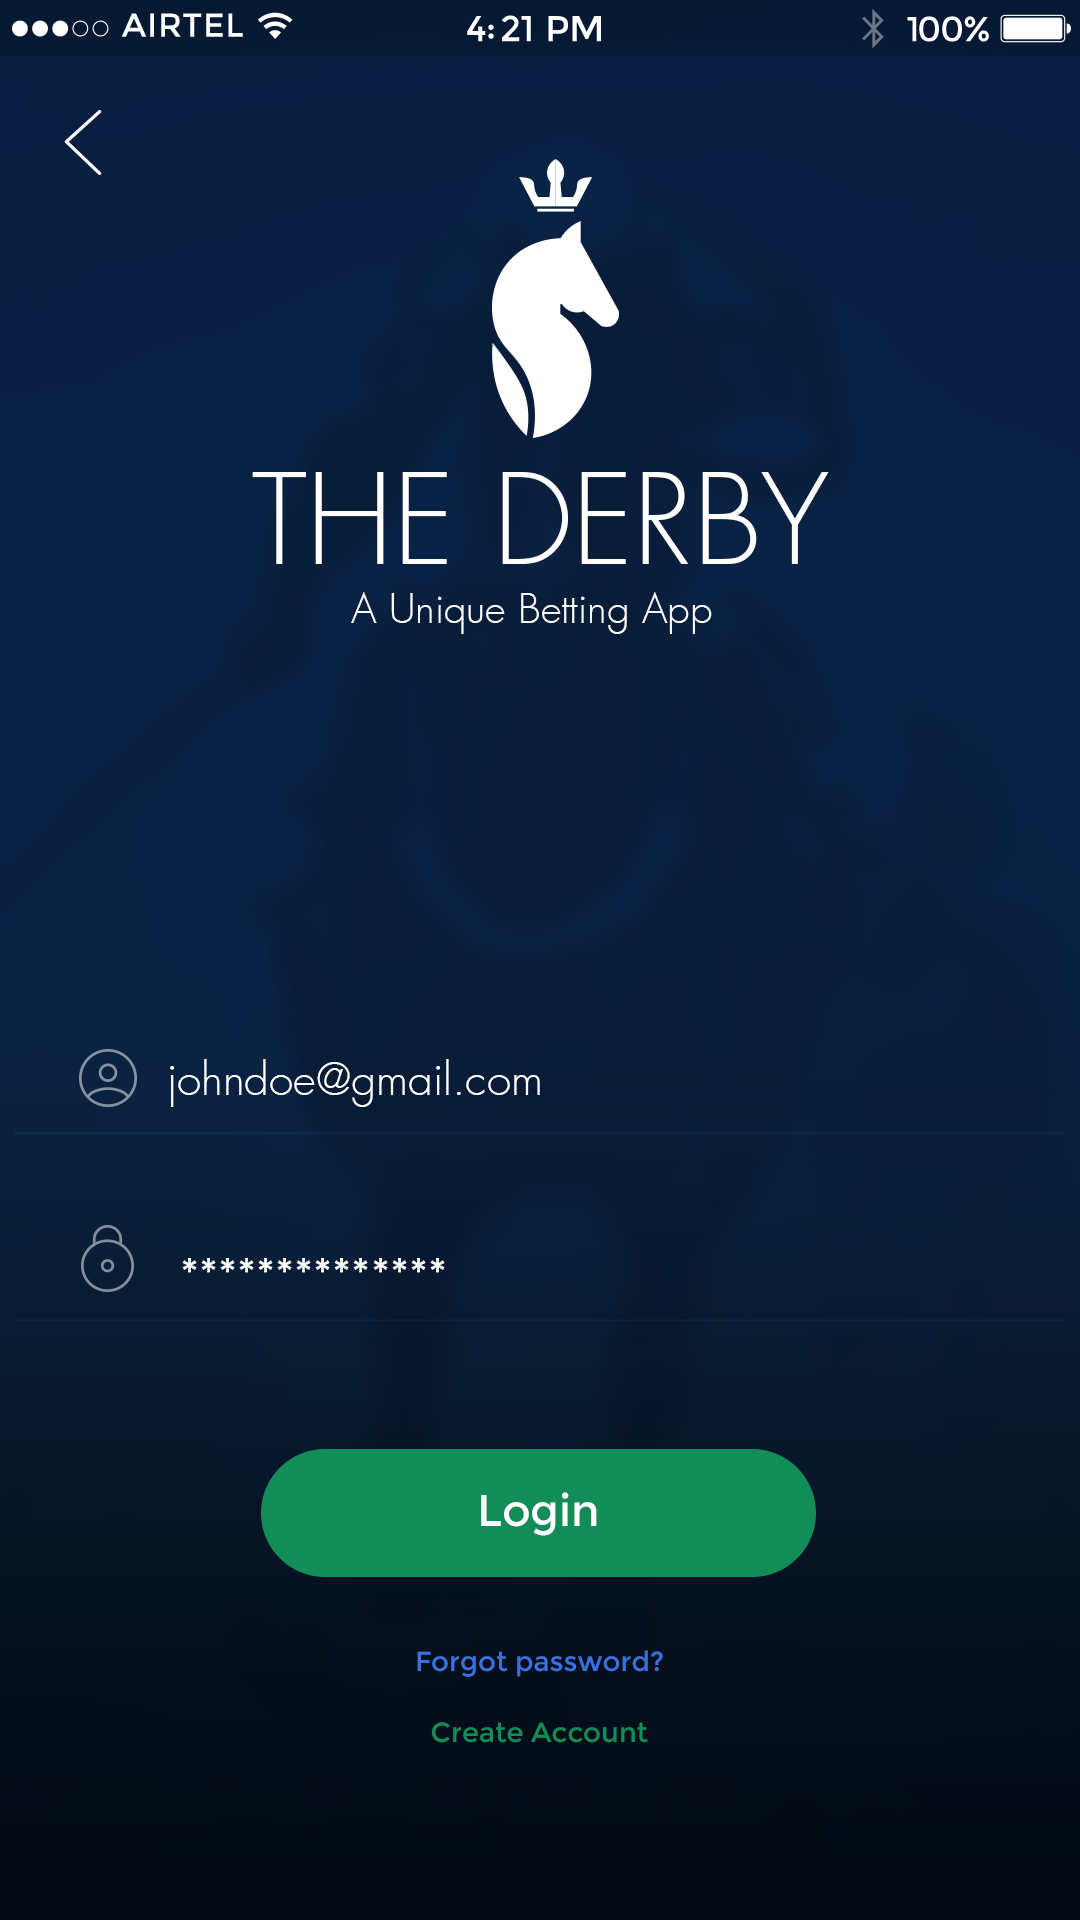 The Derby